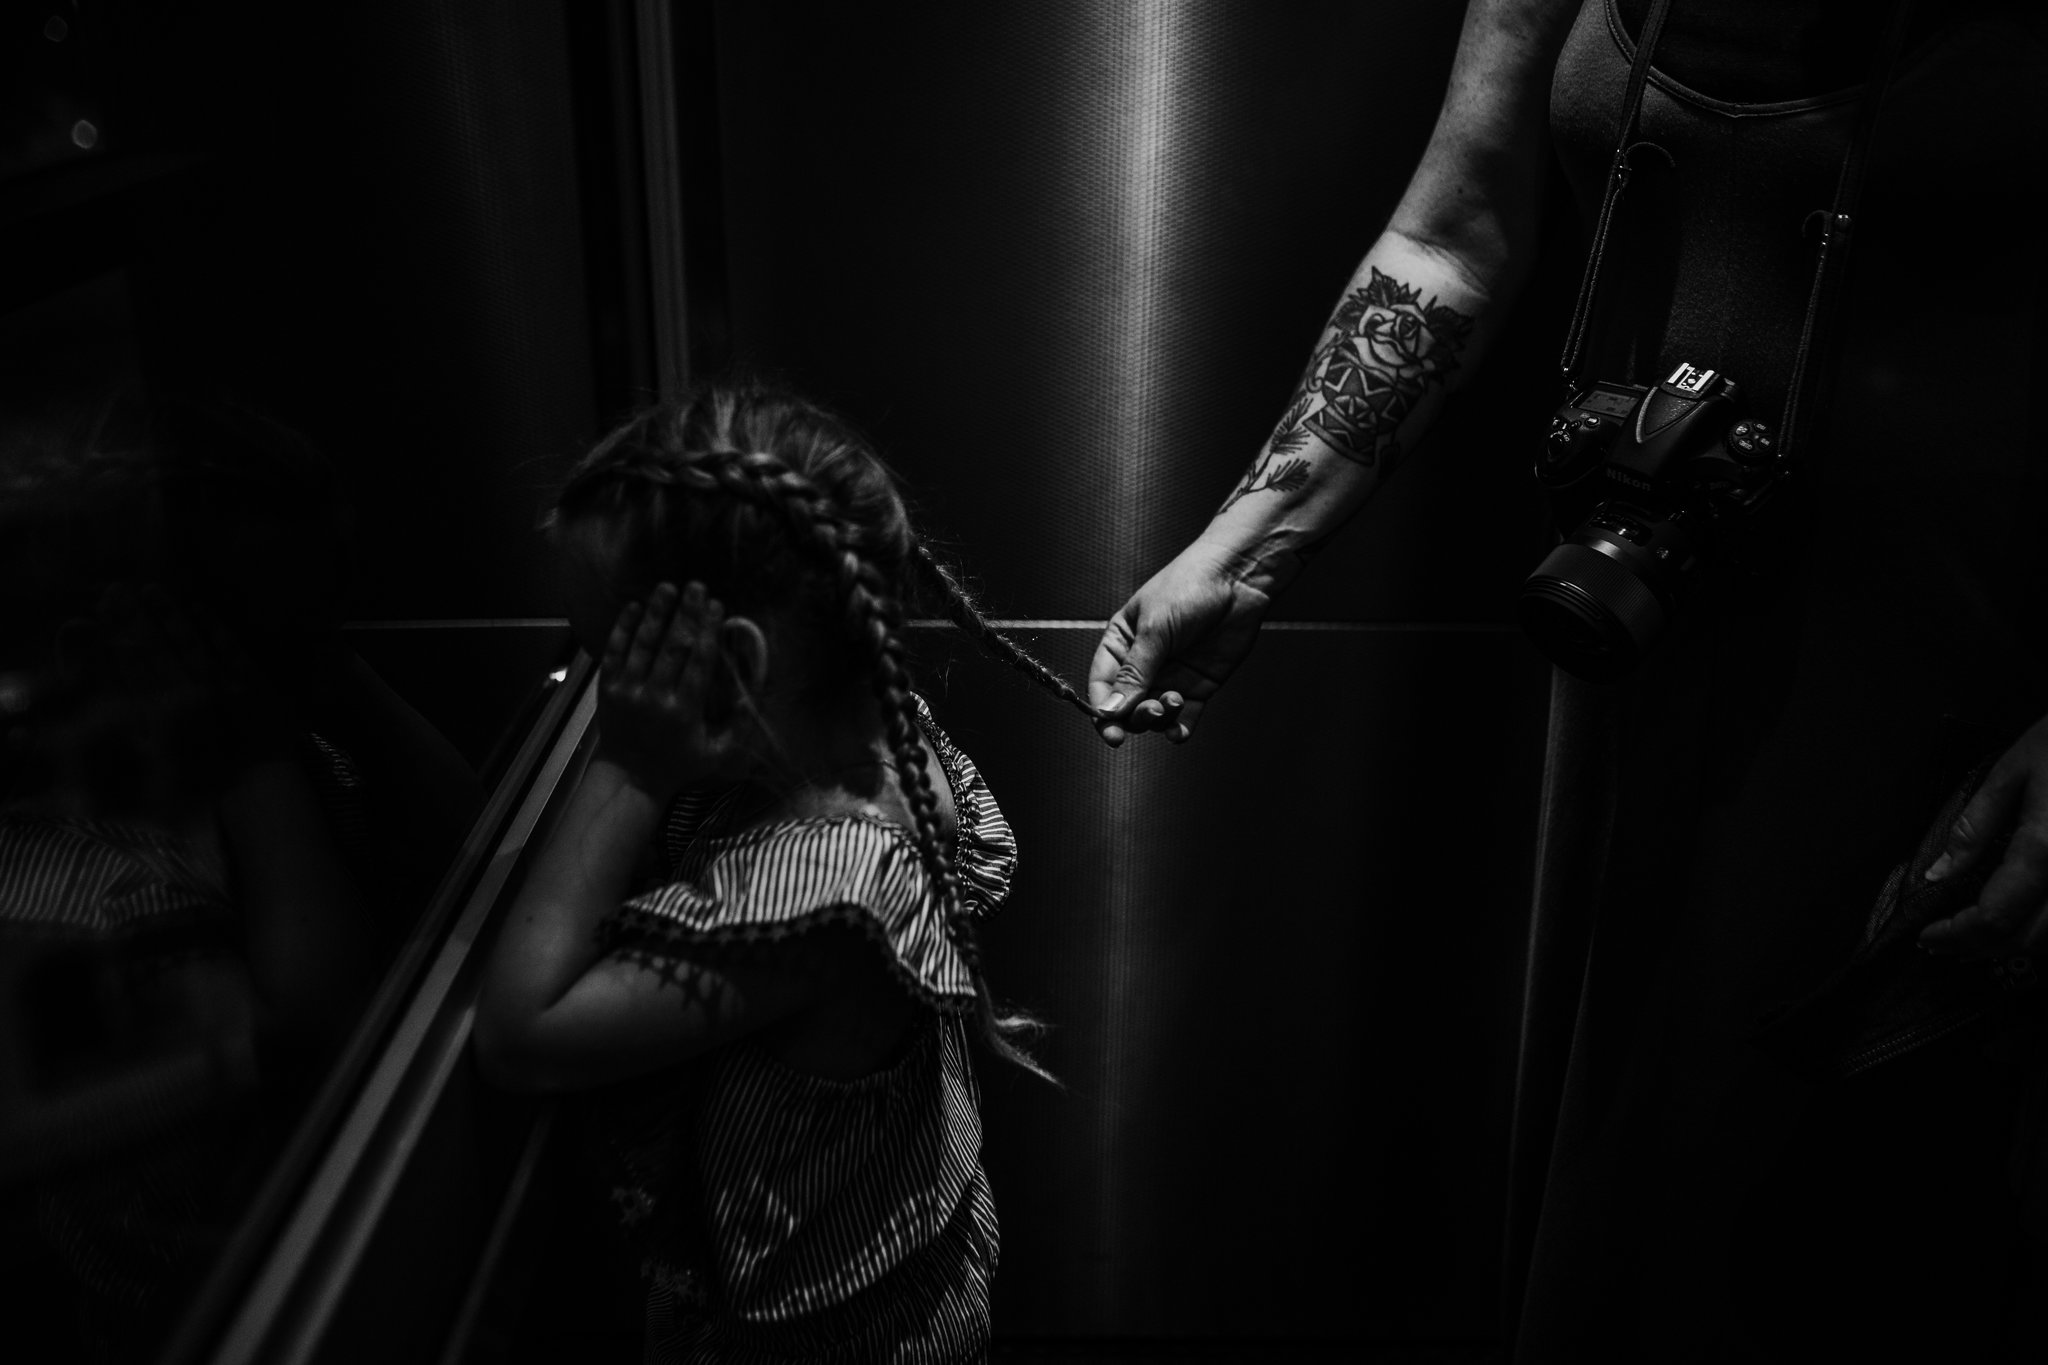 Mother plays with daughter's hair in elevator